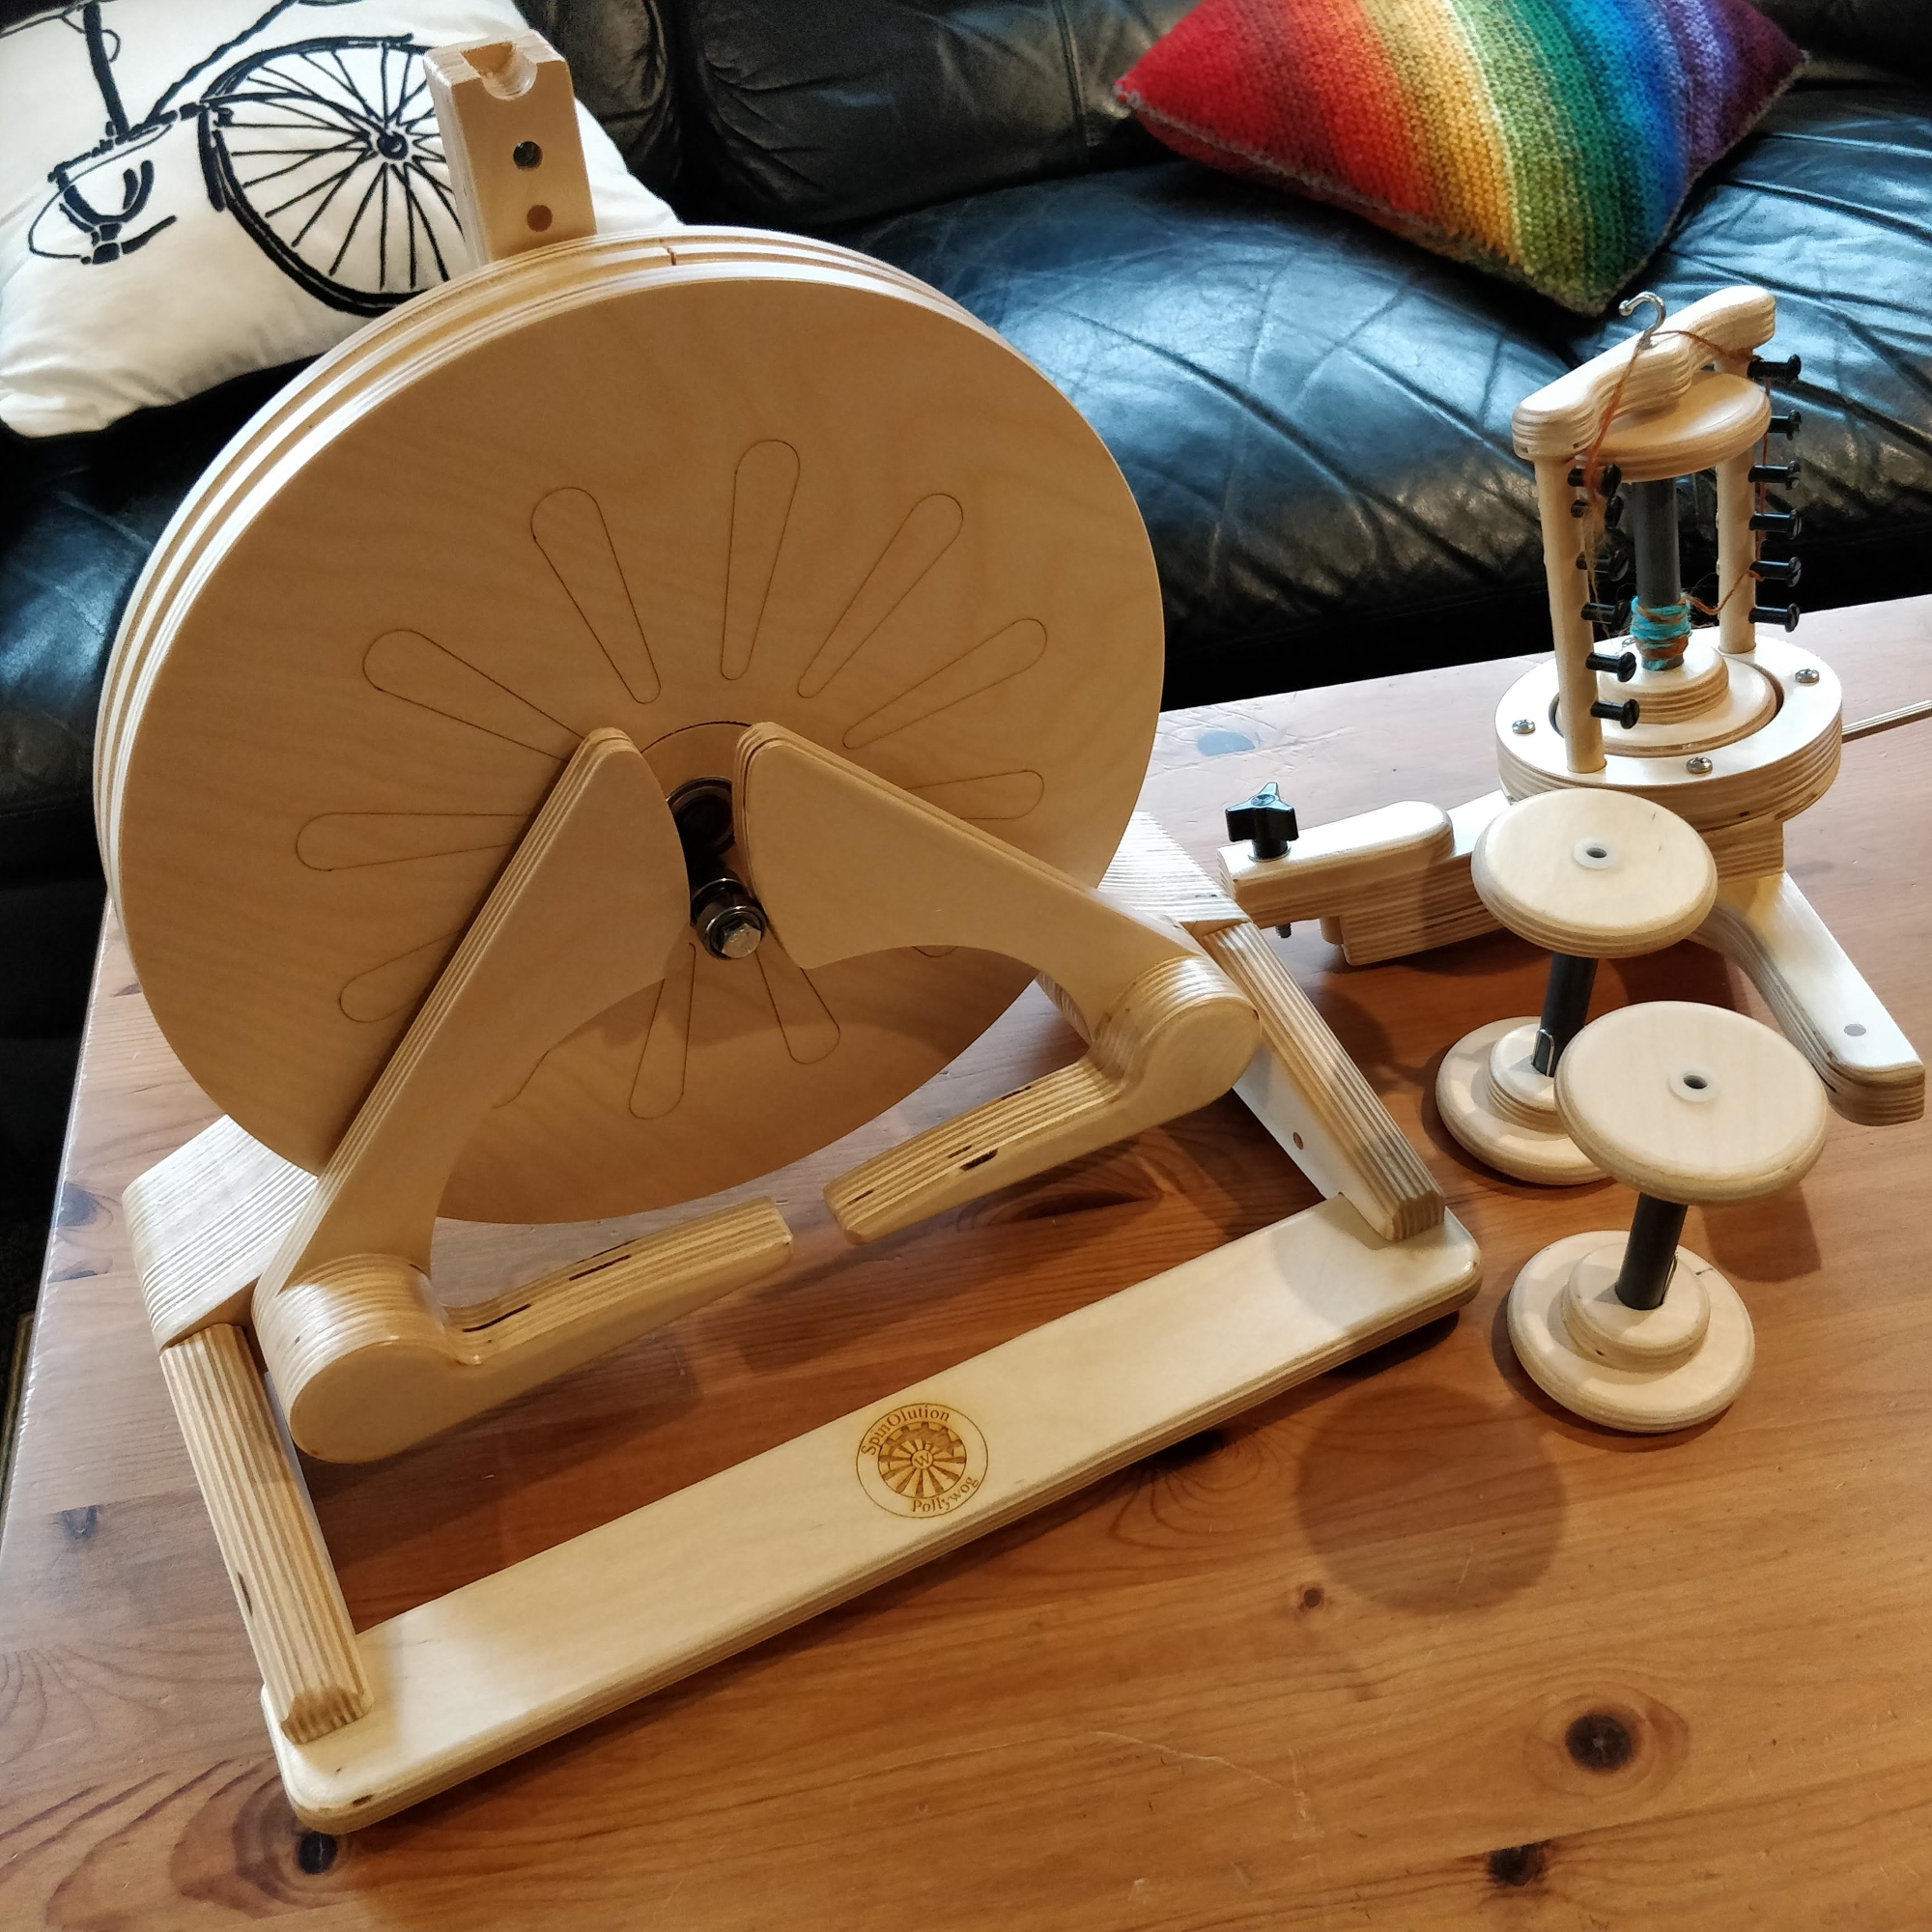 An unassembled Pollywog spinning wheel on a wooden coffee table. The main part of the wheel sits to the left. There are two bobbins next to it, and a third bobbin on the flyer behind them.